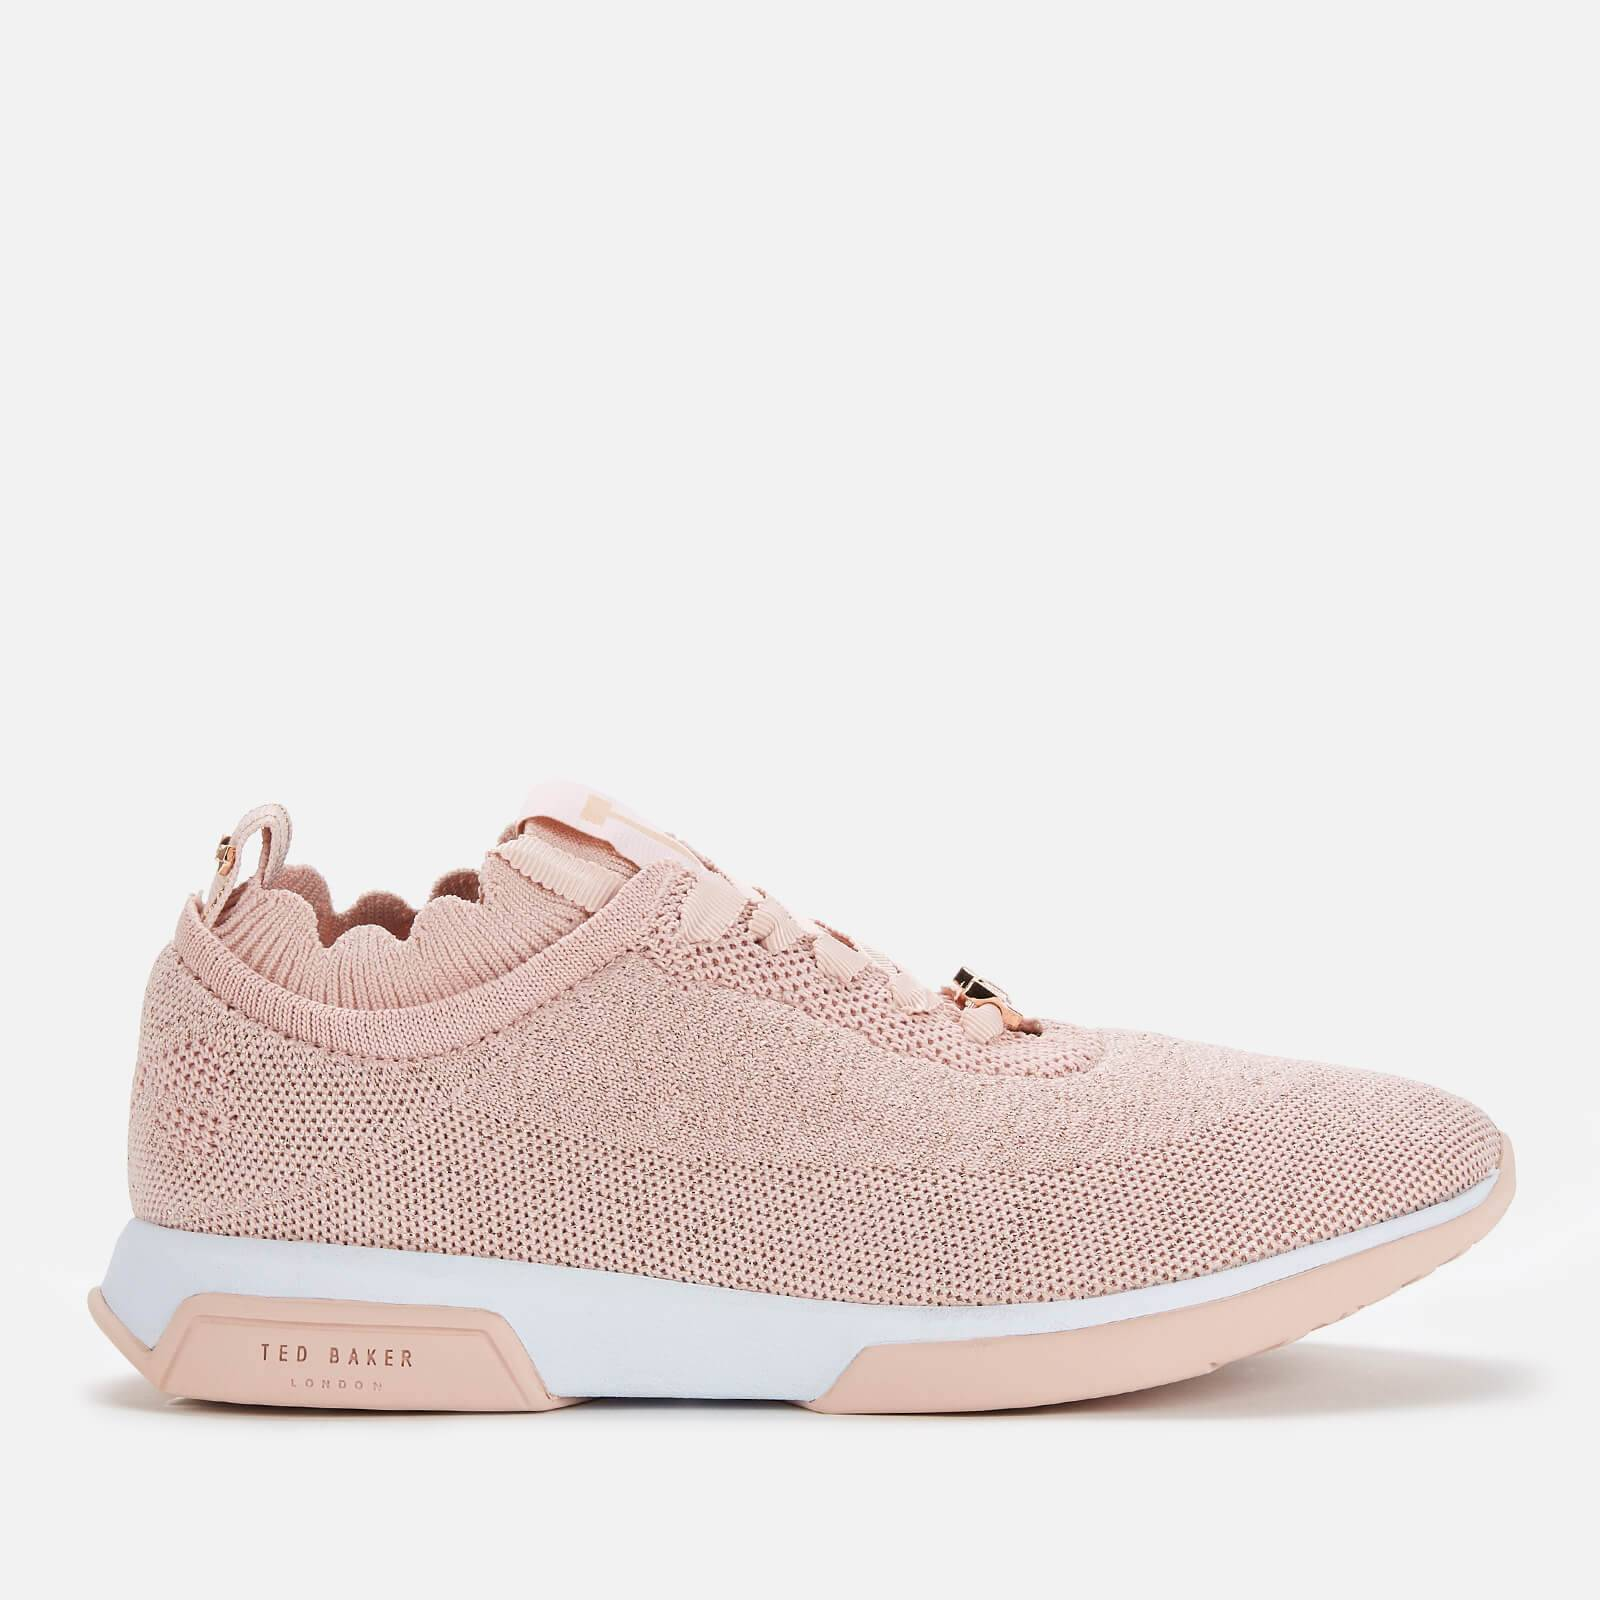 Ted Baker Women's Lyara Knitted Runner Style Trainers - Pink - UK 6 - Pink